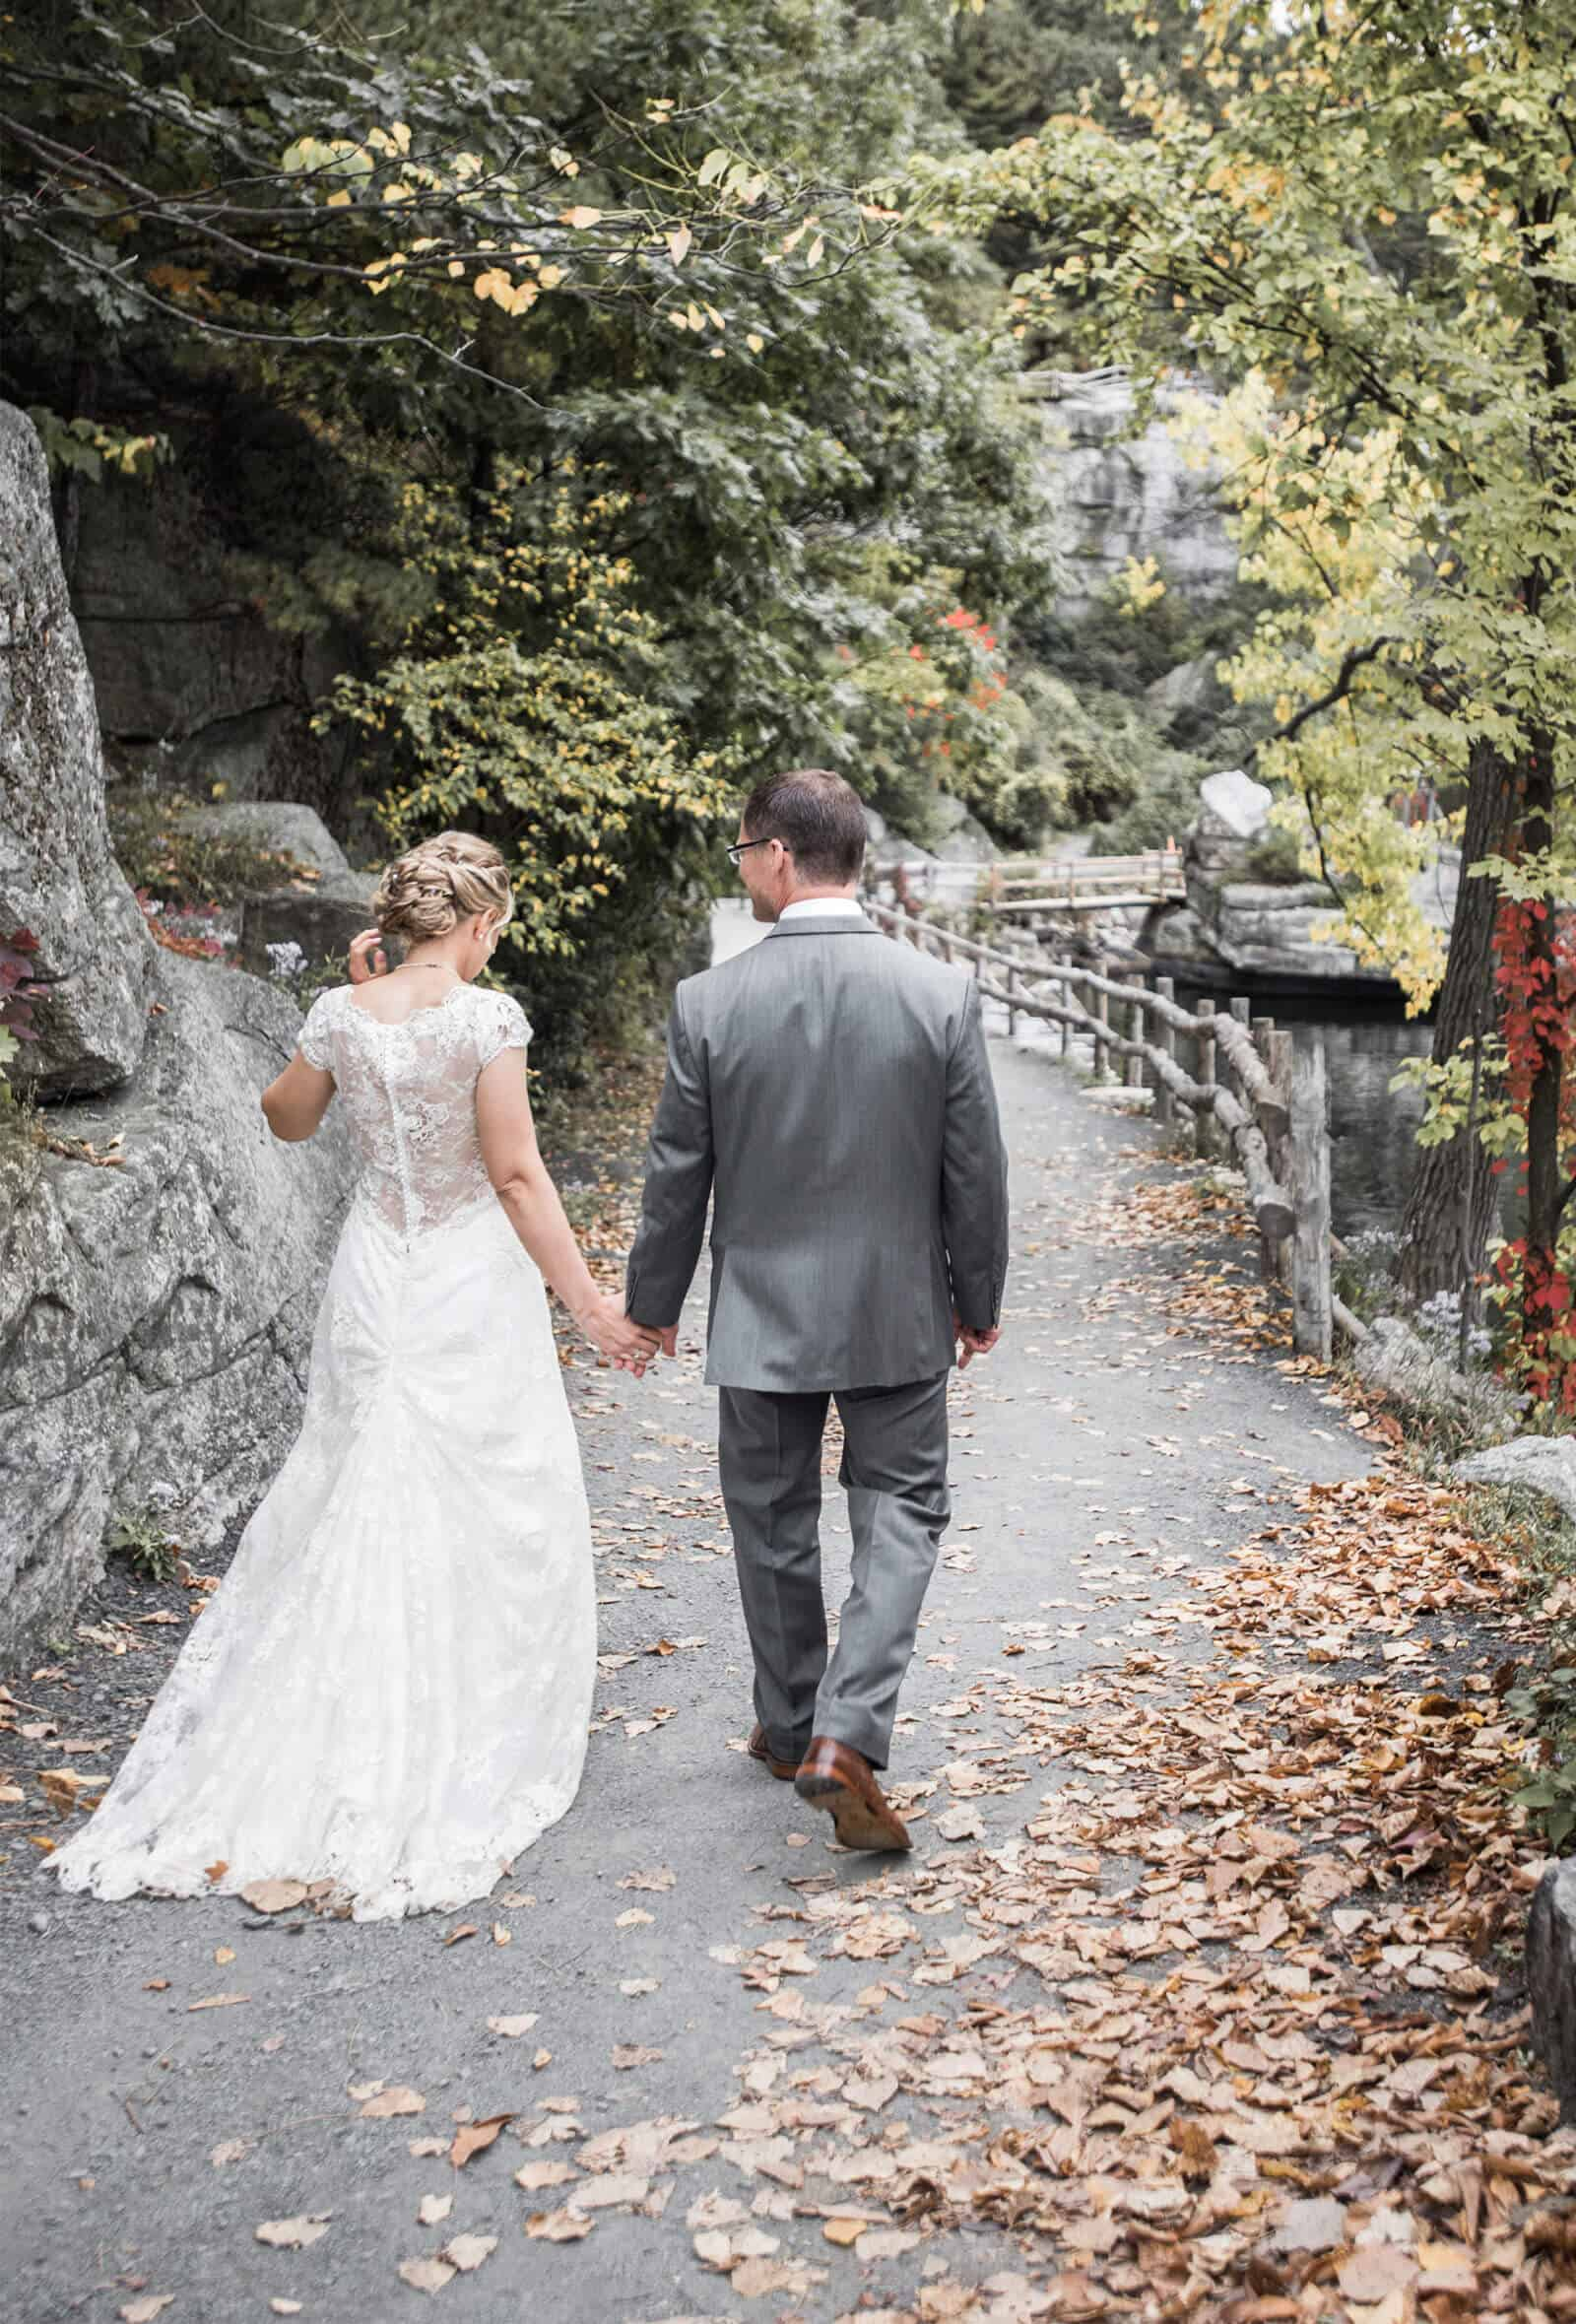 Bride and groom walking on trail